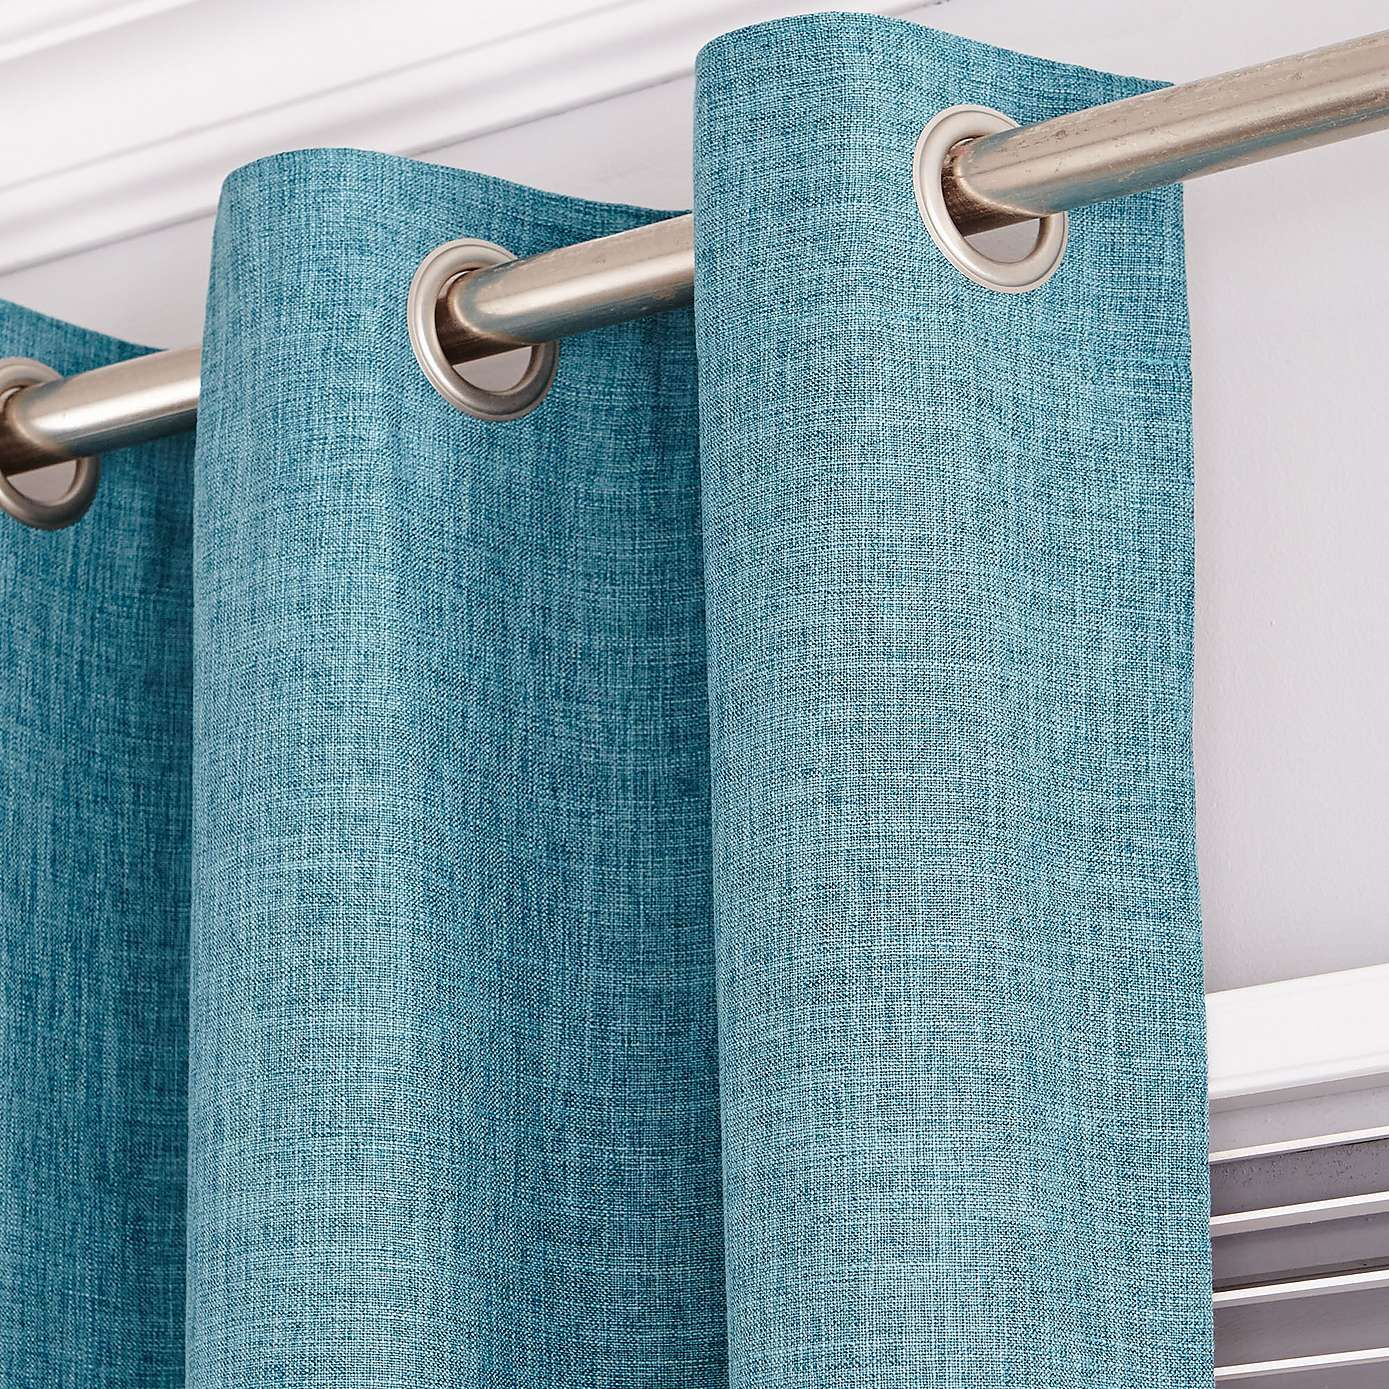 Vermont Teal Lined Eyelet Curtains | Dunelm | bykomend | Pinterest ...